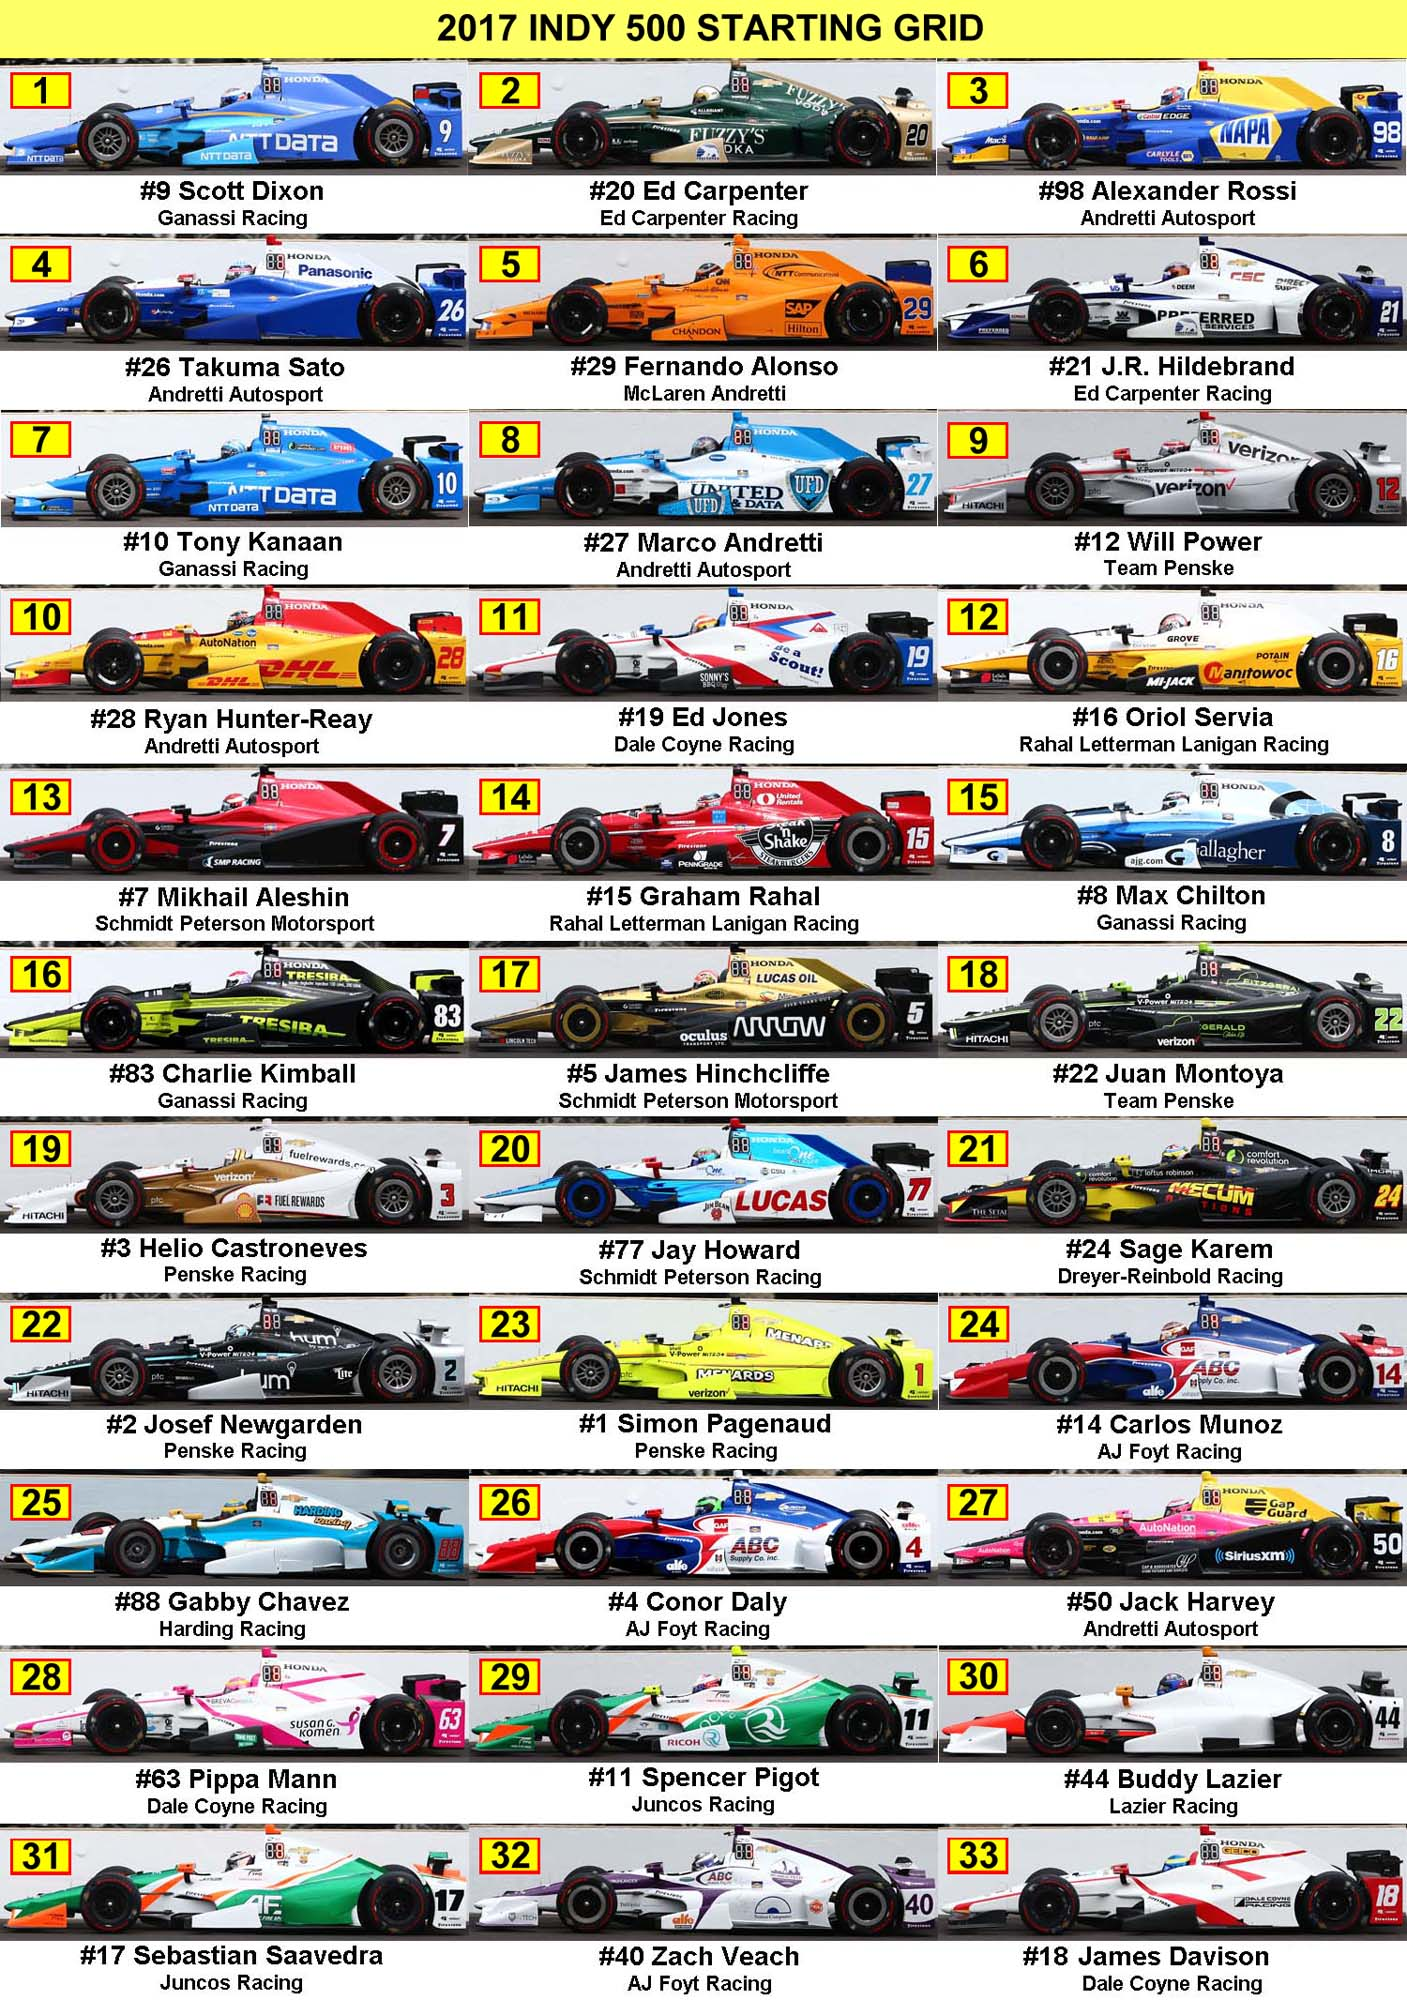 image about Printable Indy 500 Starting Grid titled 2017 Indy 500 Starting off Grid Identical Keywords and phrases Recommendations